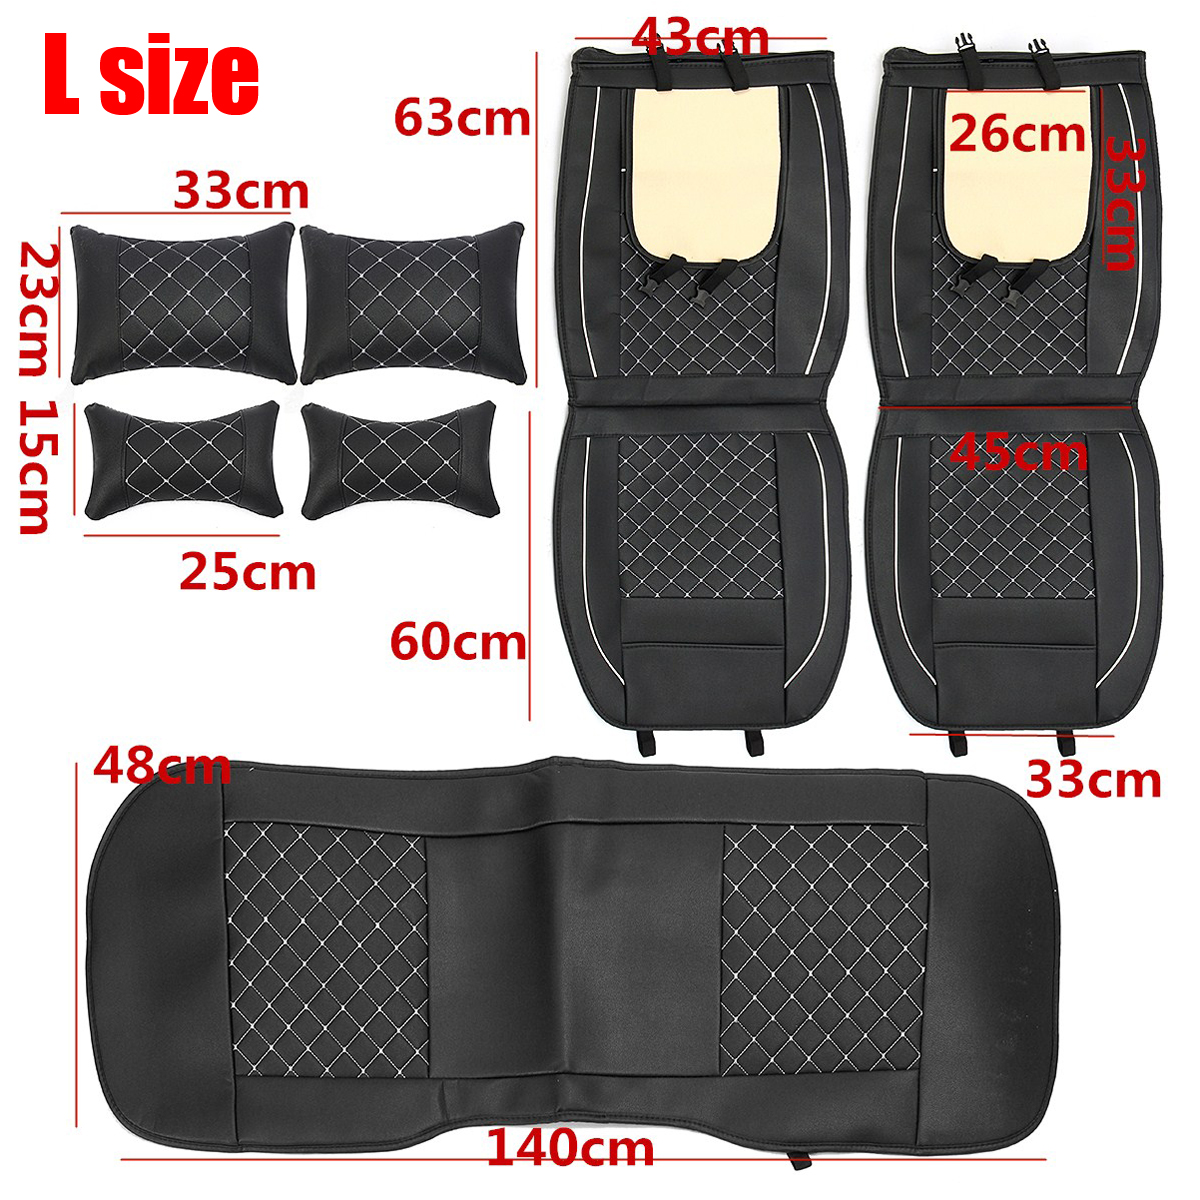 Deluxe 5 Seats Car PU Leather Front Rear Cover Cushion Mat + Pillows Universal